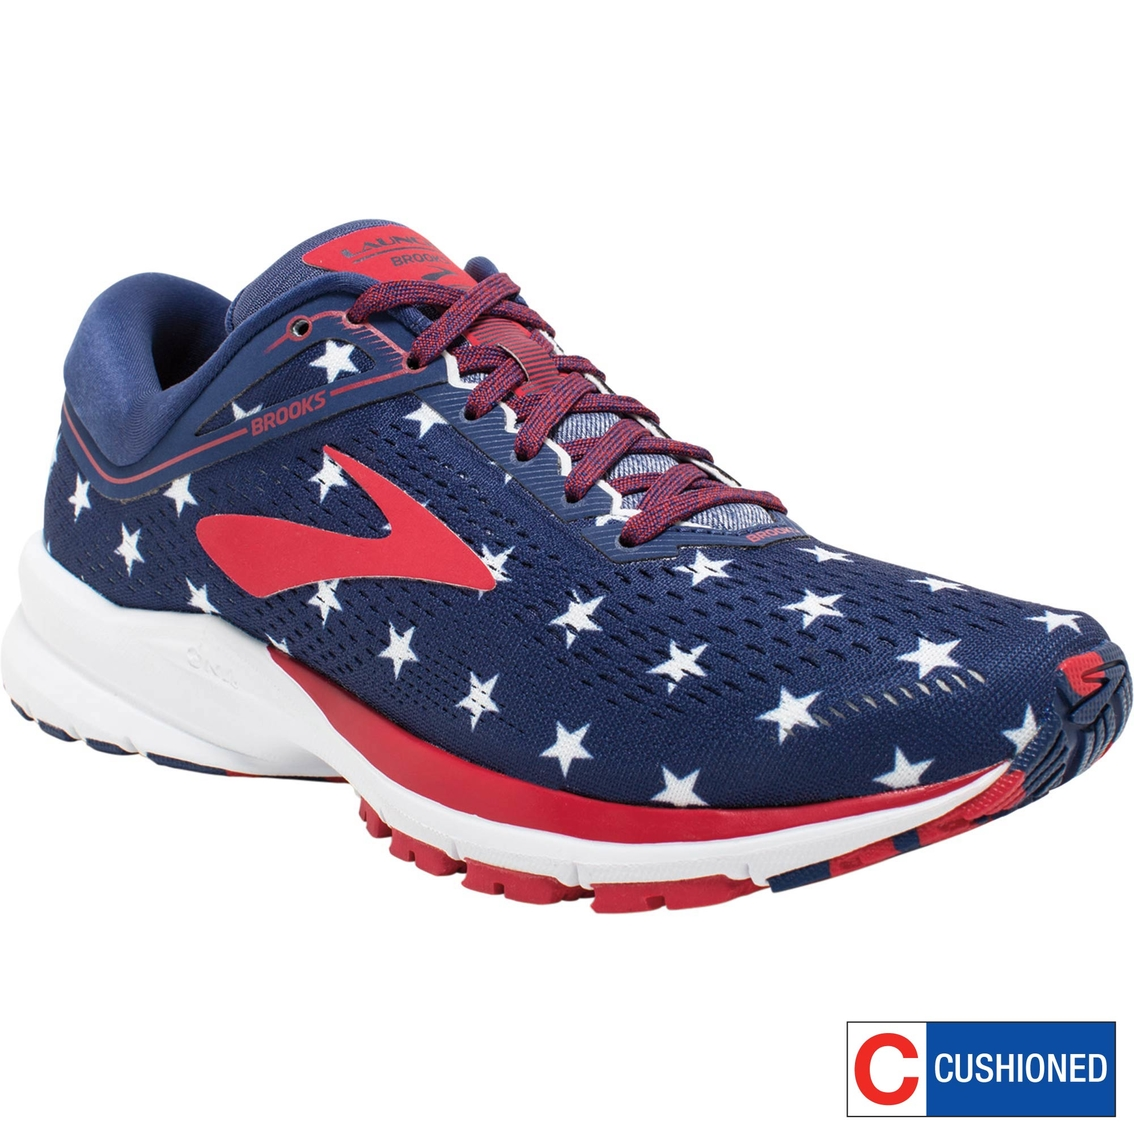 brooks usa shoes